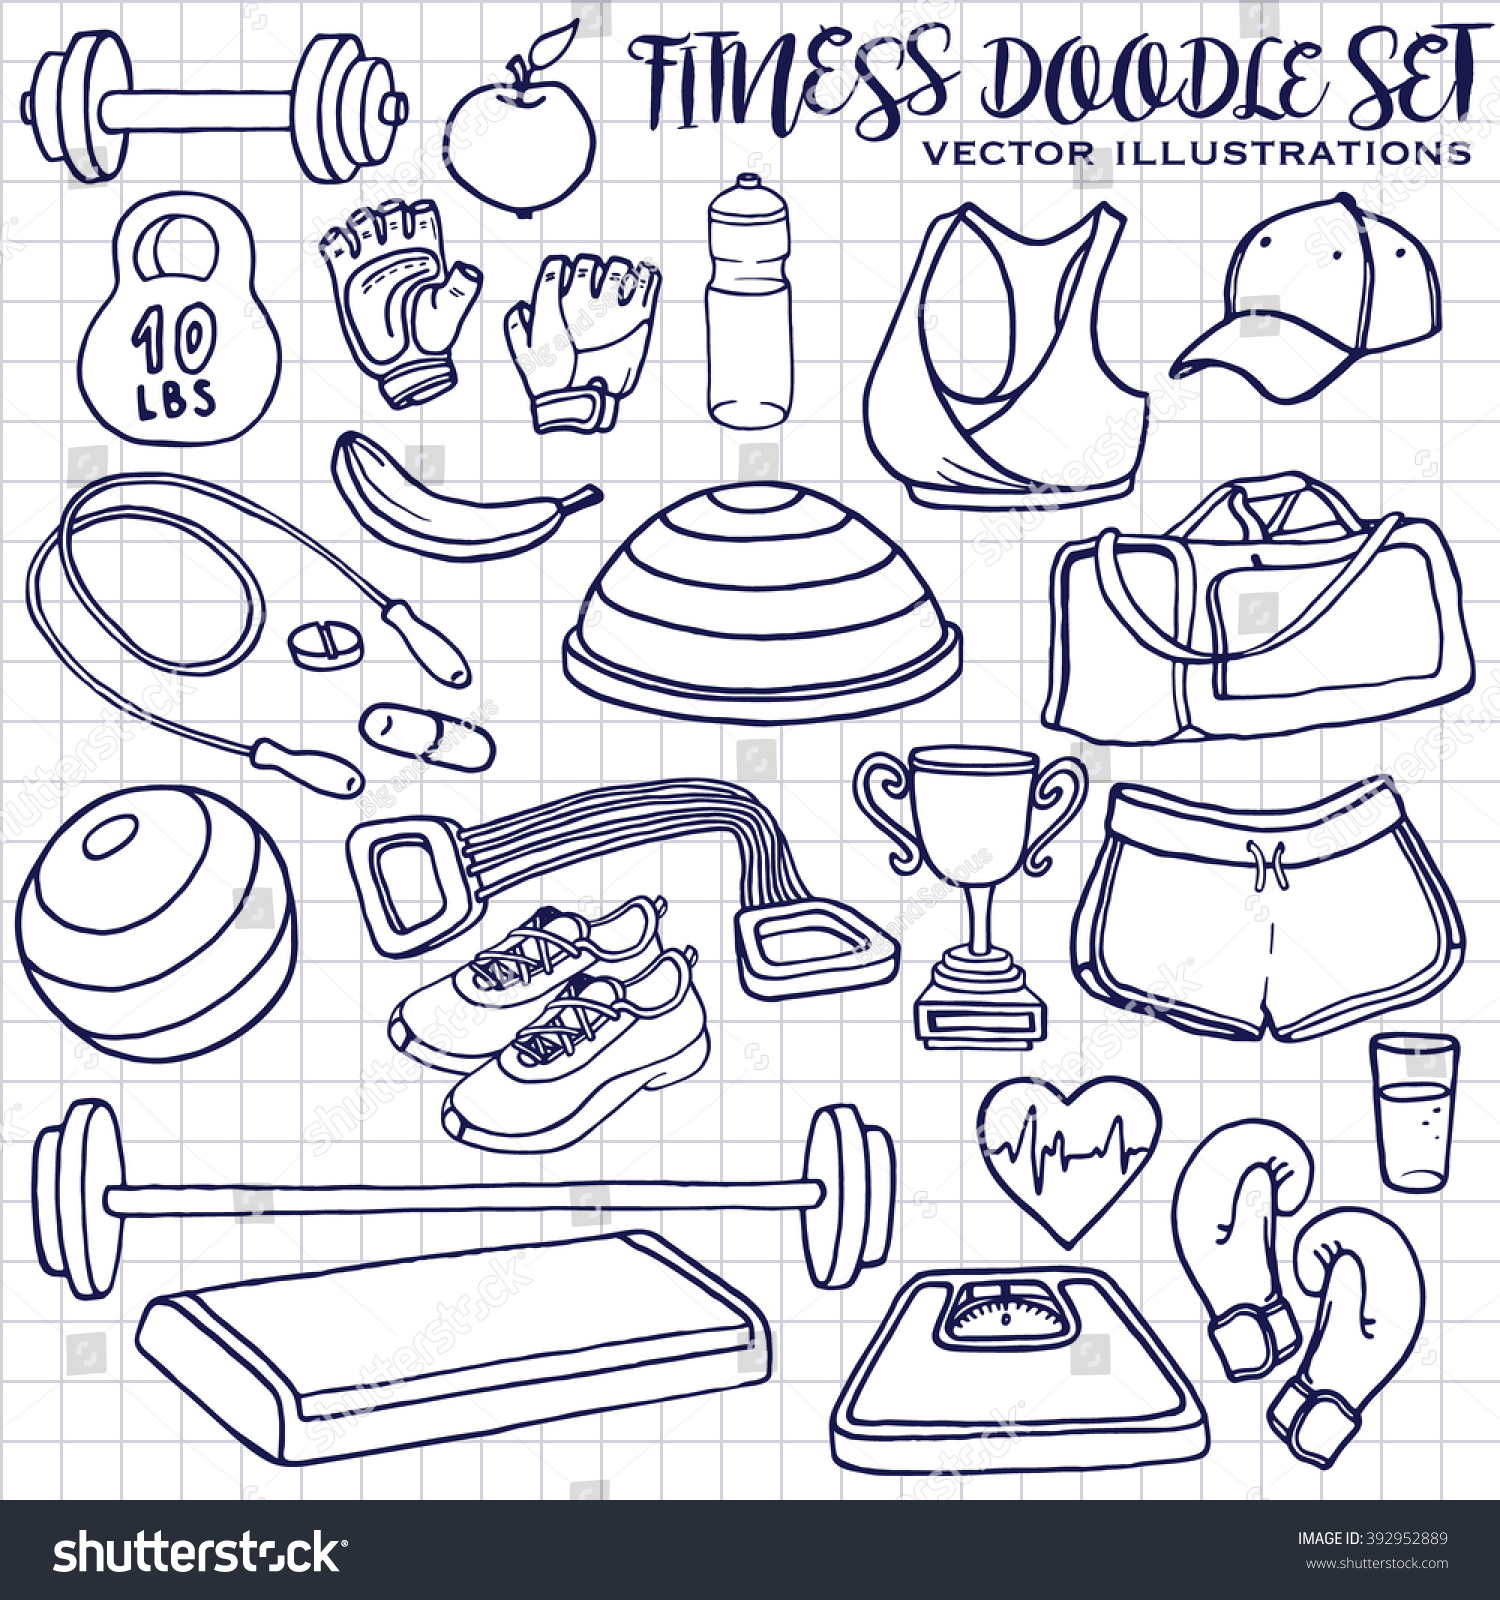 hand drawn fitness doodle set on stock vector 392952889 shutterstock